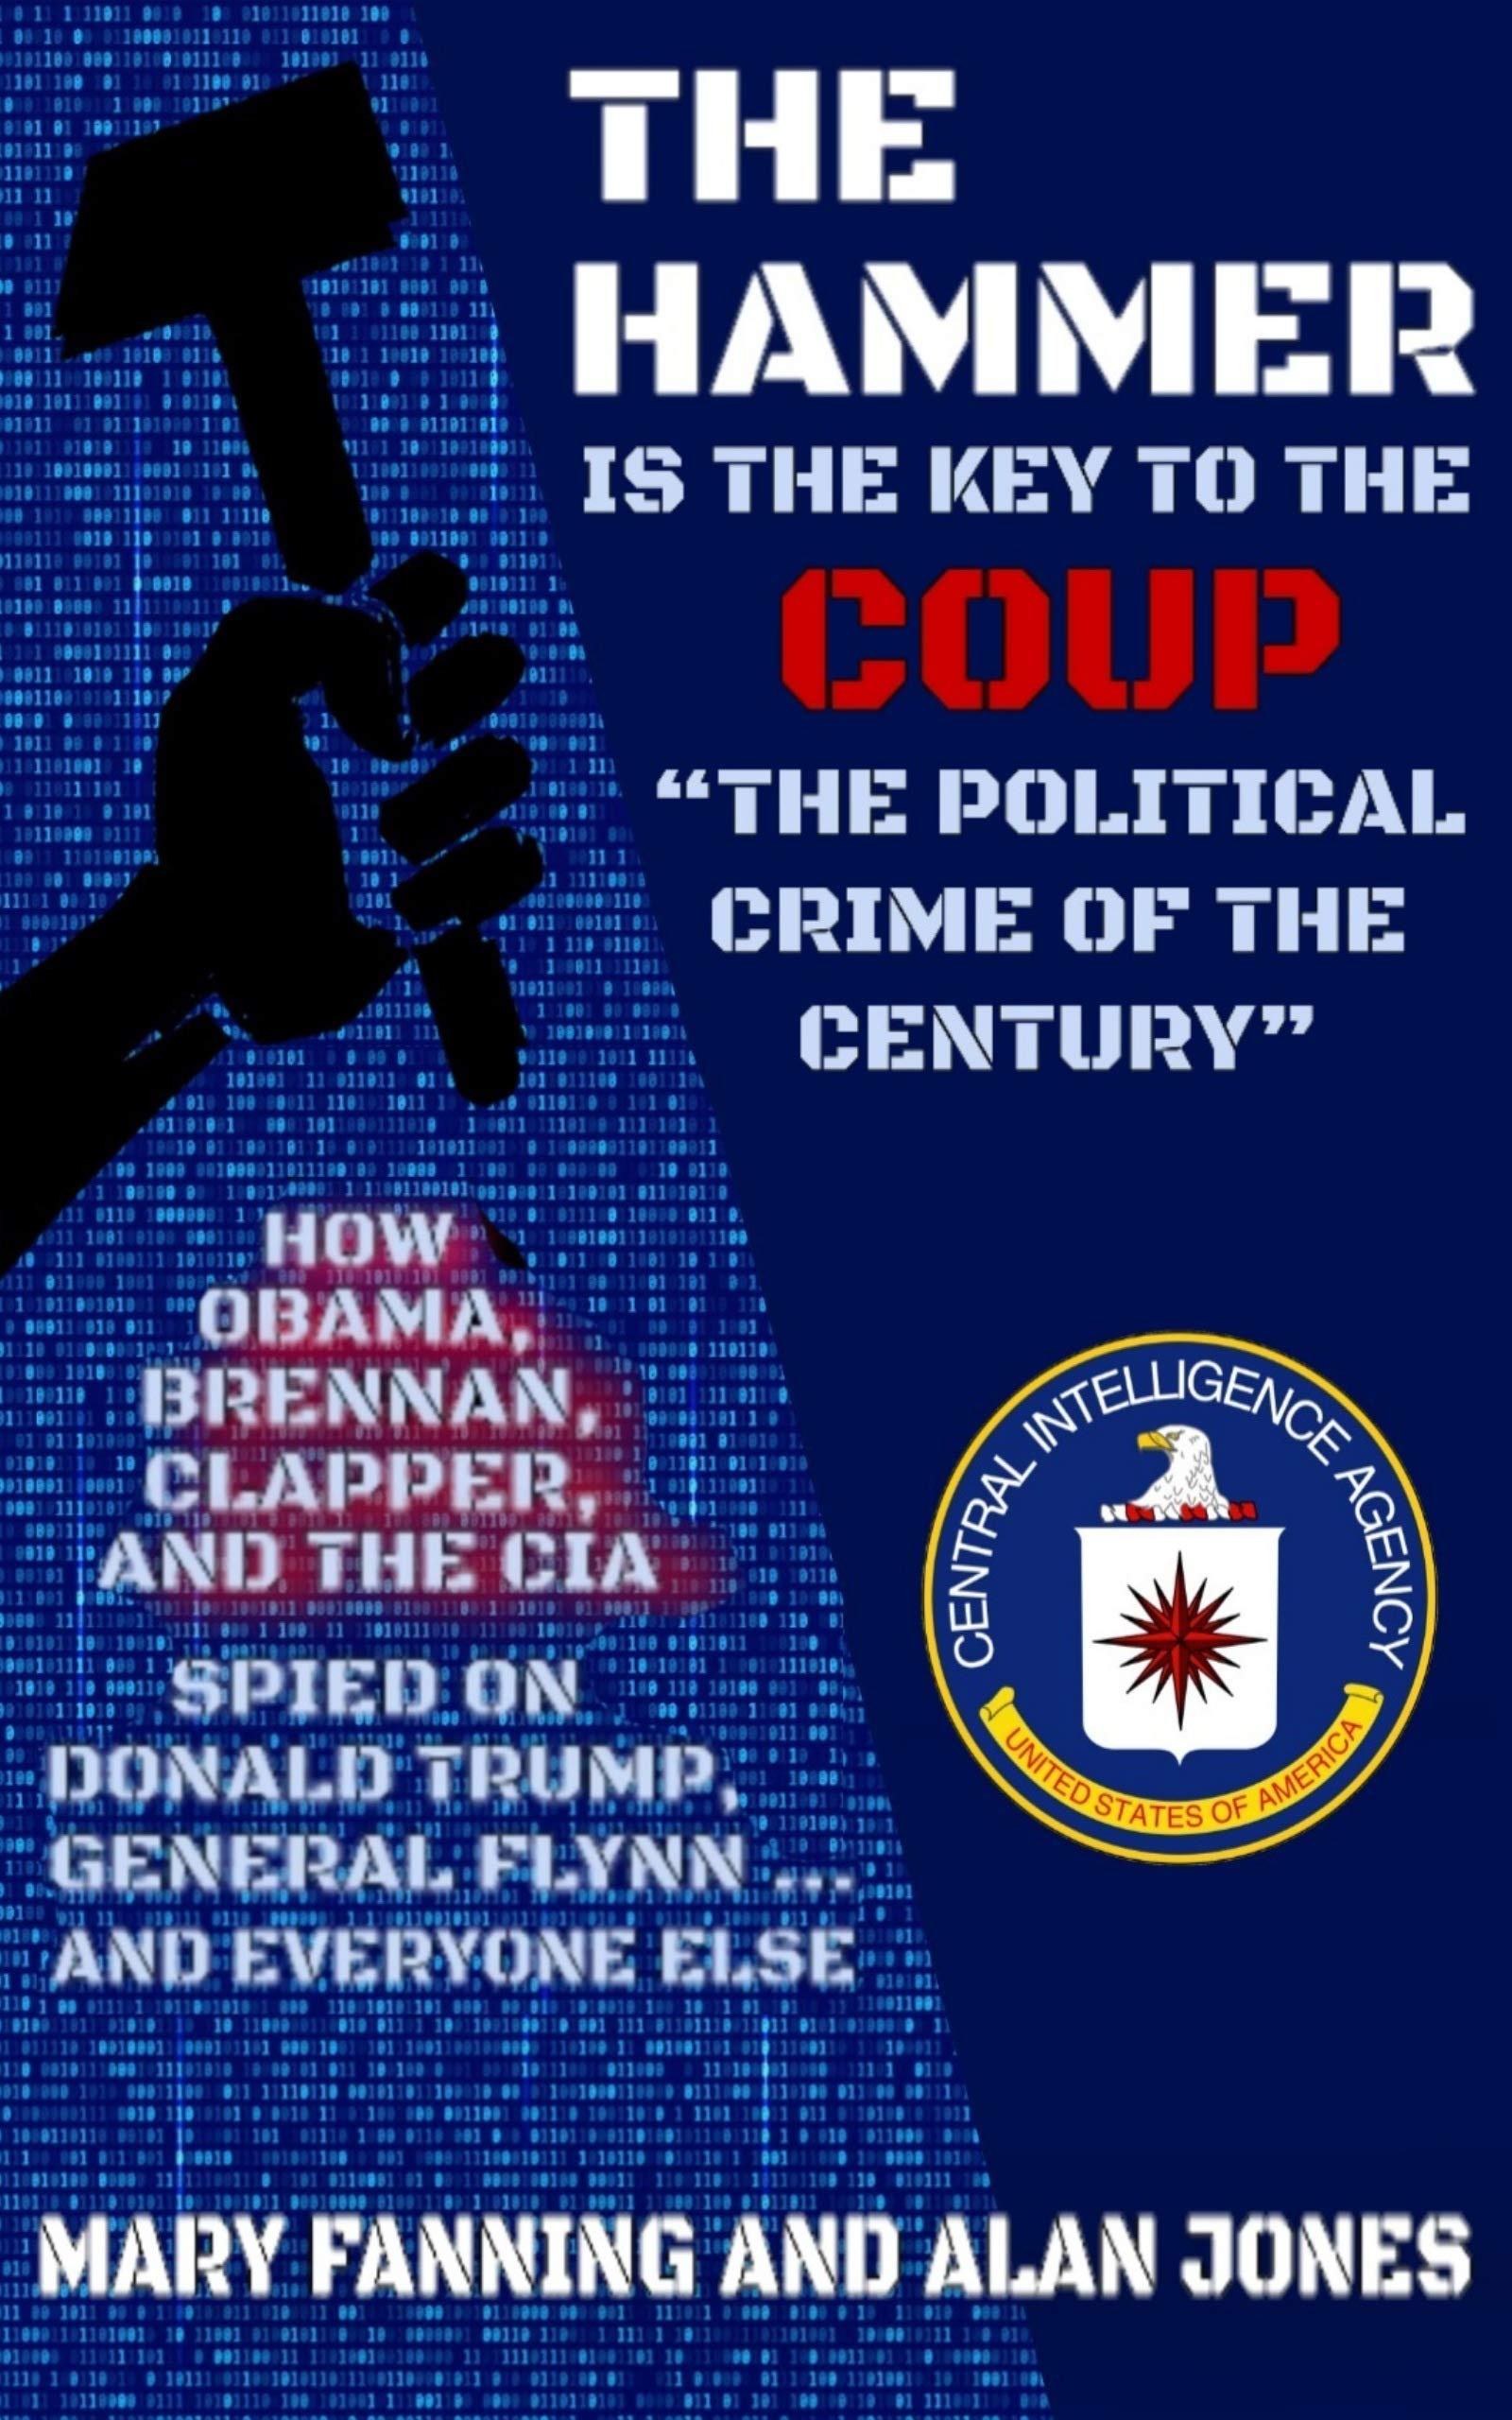 """THE HAMMER is the Key to the Coup """"The Political Crime of the Century"""": How Obama, Brennan, Clapper, and the CIA spied on President Trump, General Flynn ... and everyone else"""